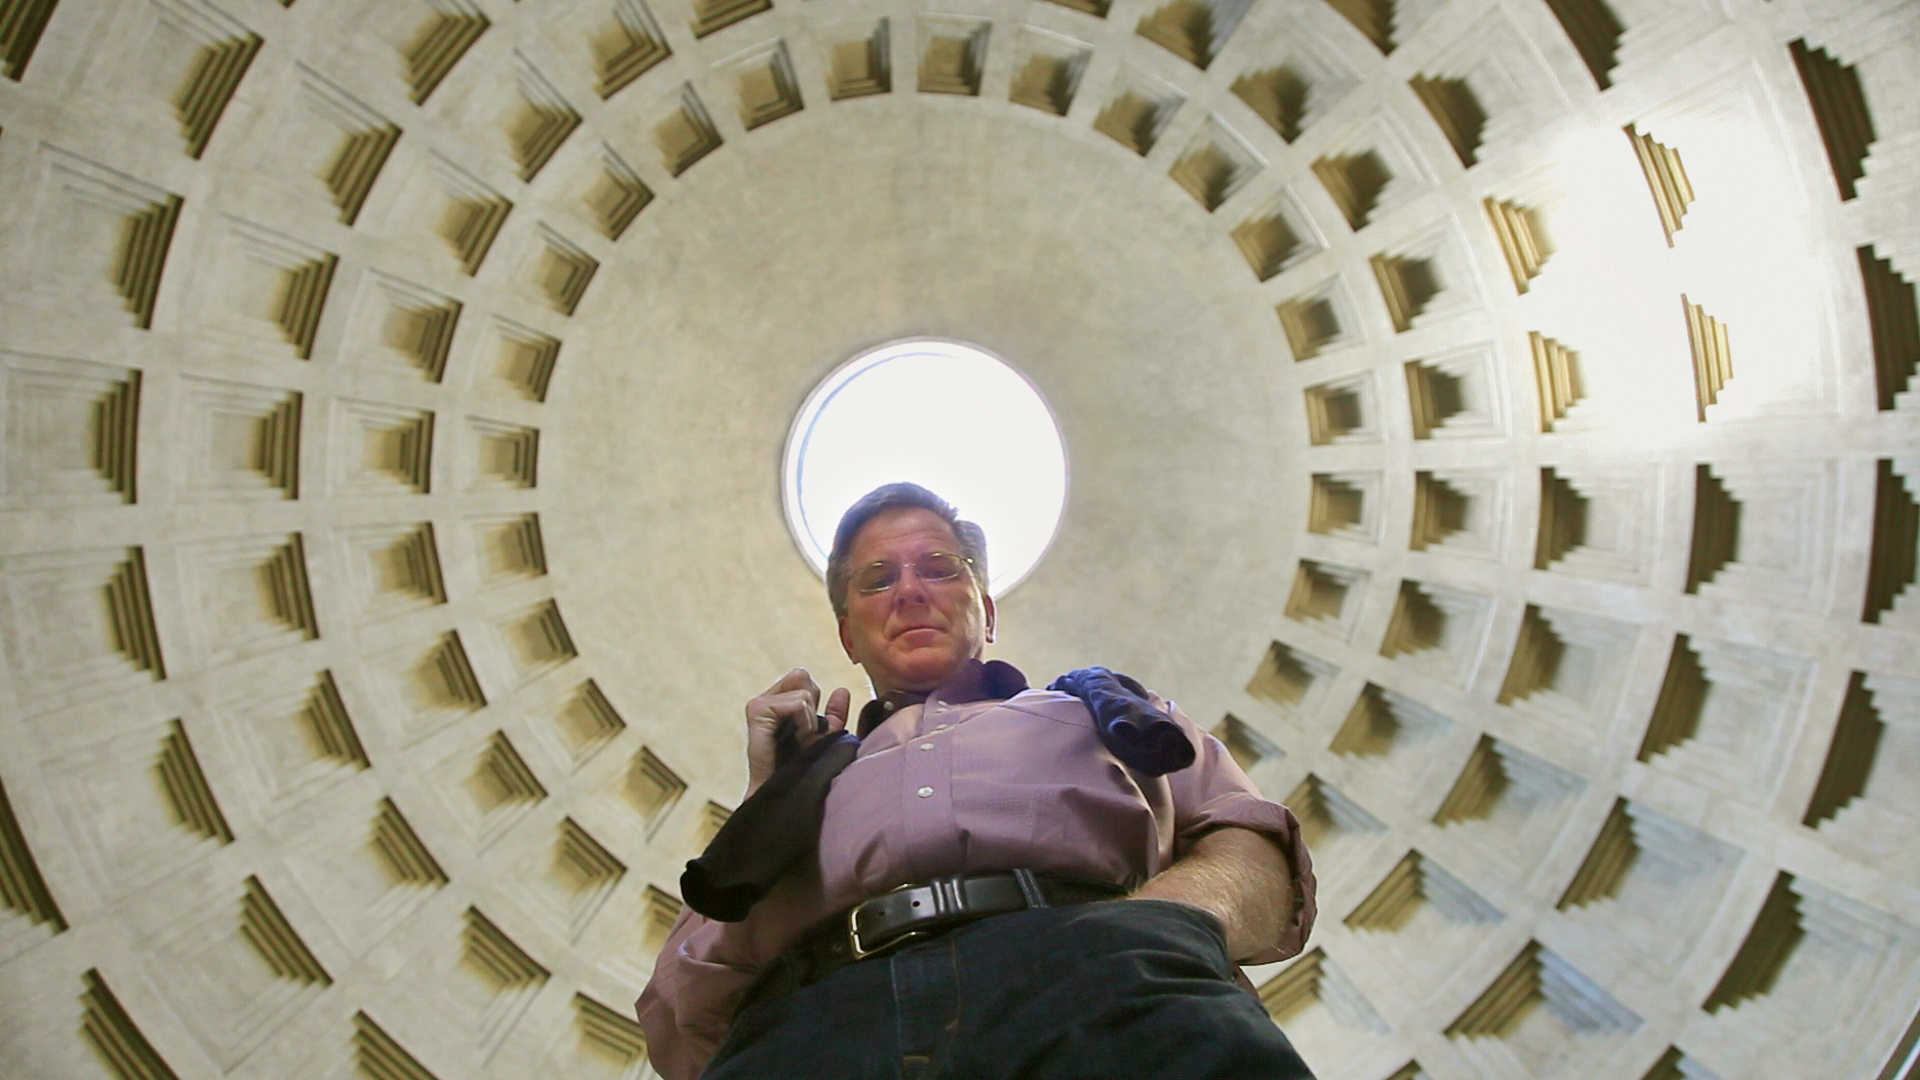 Rome: Rick Steves beneath the Oculus of the Pantheon